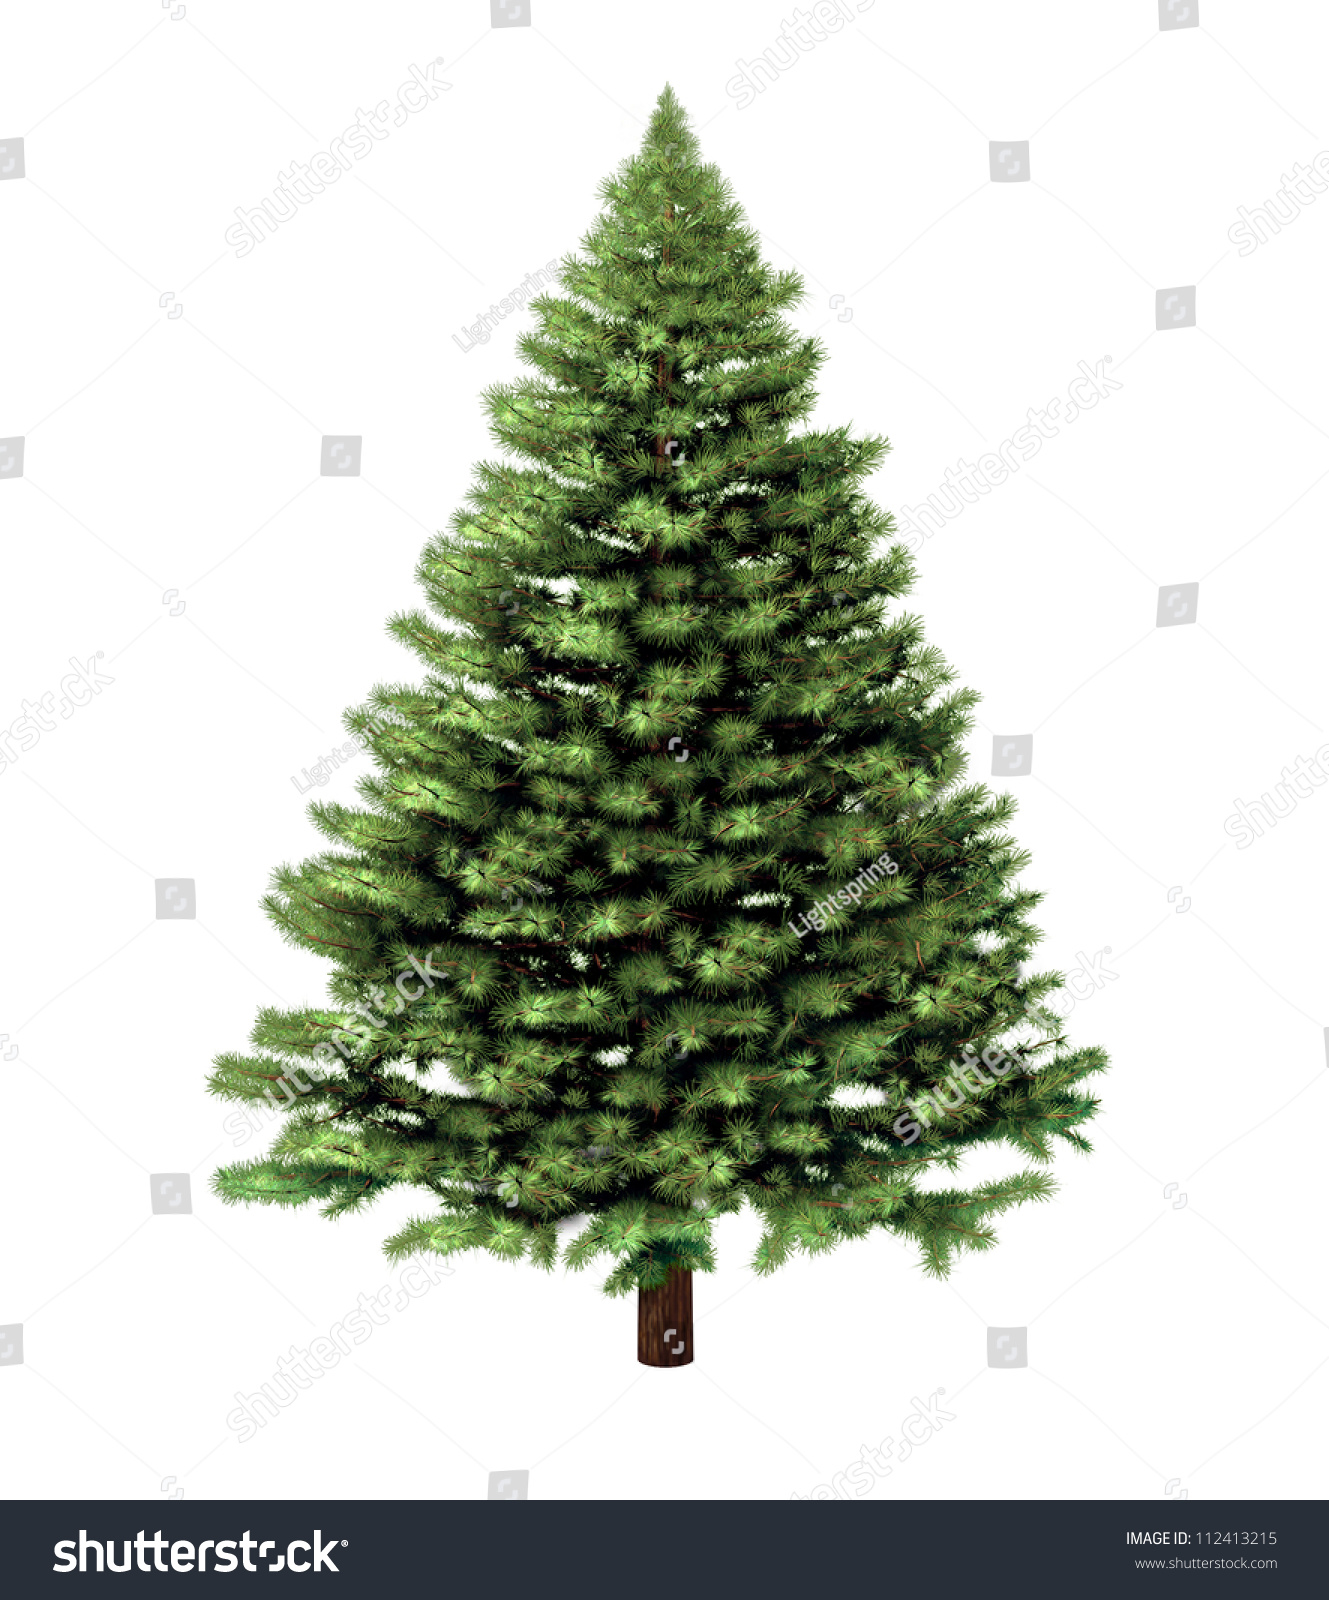 Christmas Tree Isolated On A White Background Without Any